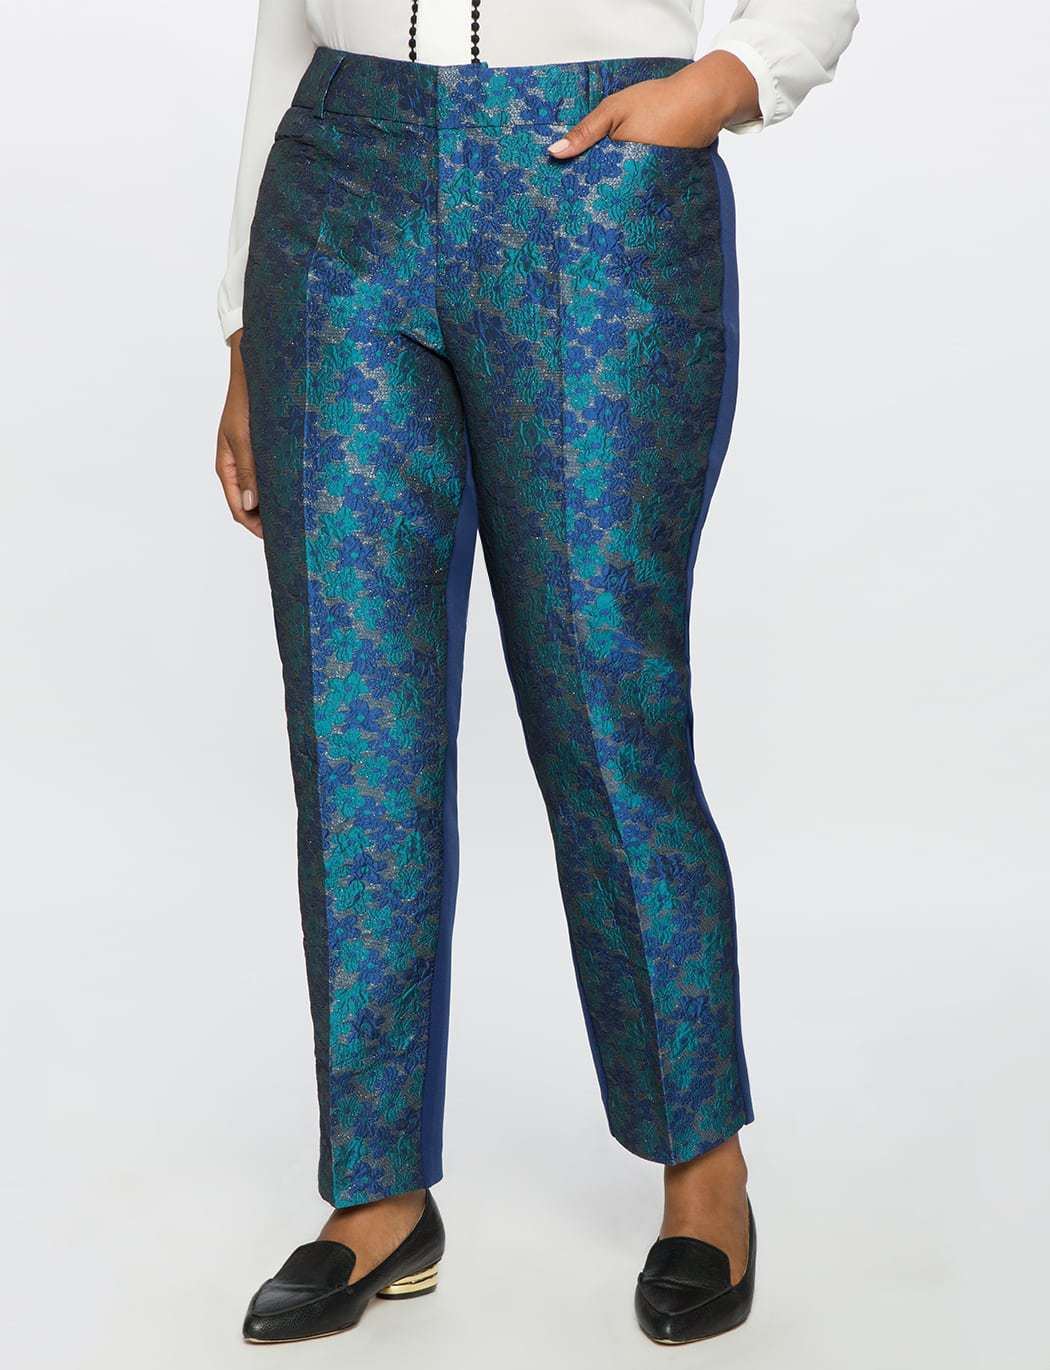 ELOQUII Studio Kady Fit Floral Brocade Pant Review by Wardrobe Oxygen